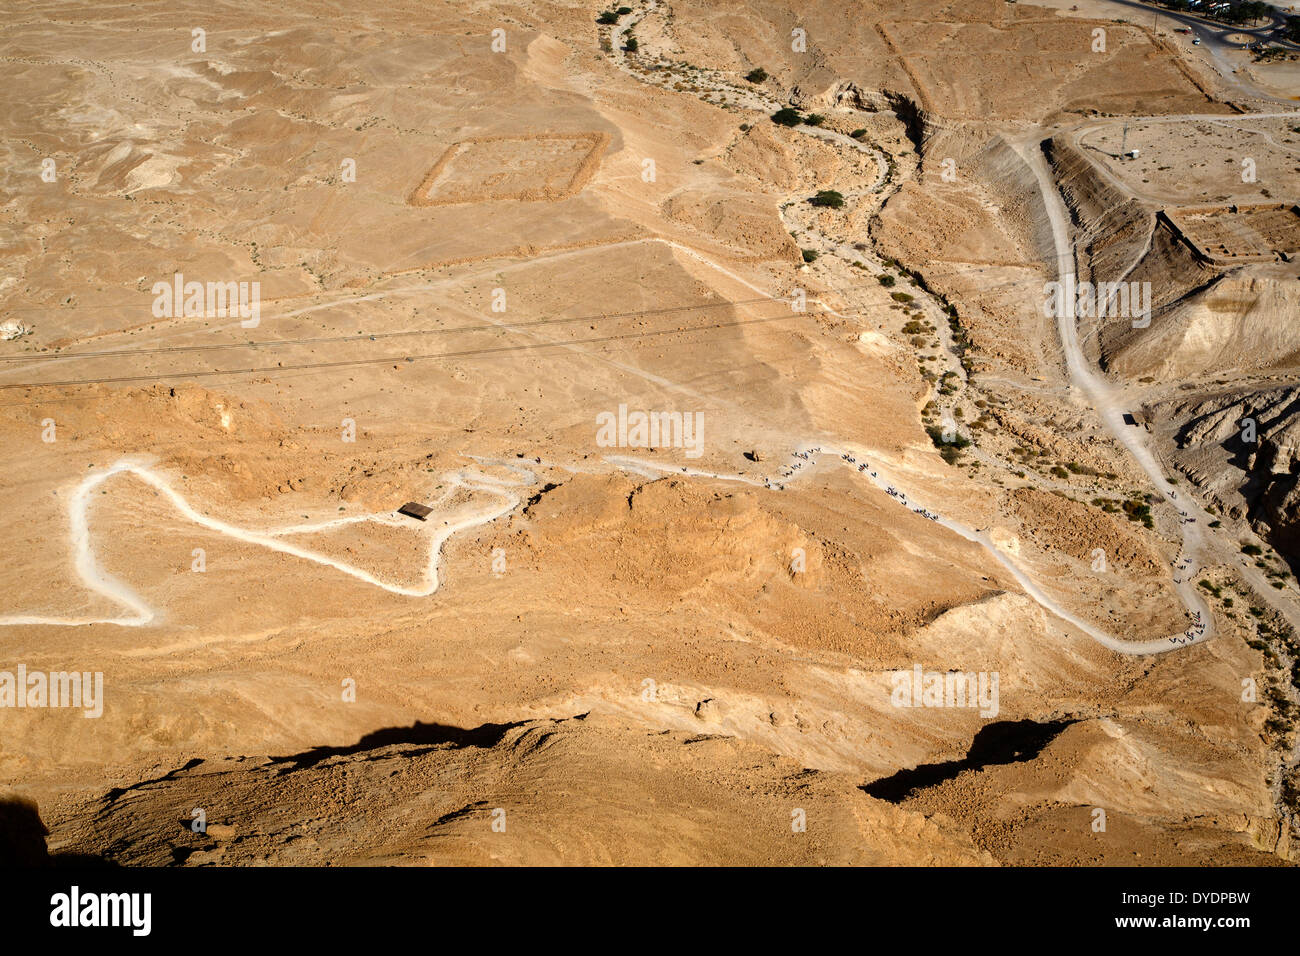 The snake path leading to the Masada fortress on the edge of the Judean Desert, Israel. - Stock Image